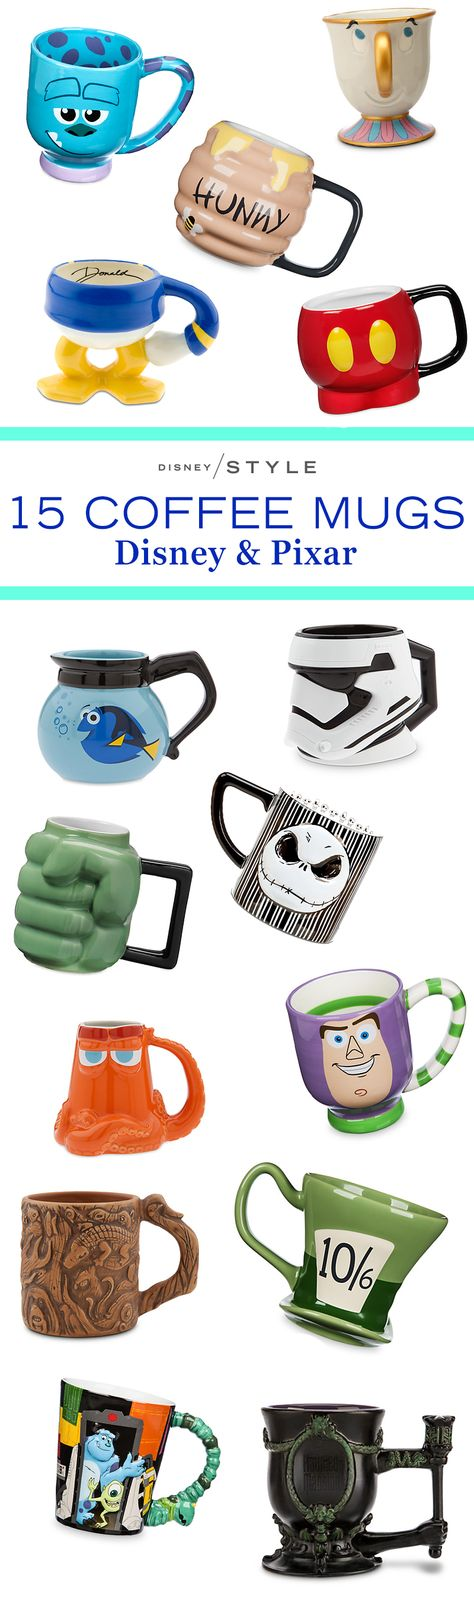 15 Disney & Pixar mugs to make a statement at work   Finding Dory + Toy Story + Star Wars + Winnie the Pooh + Mickey Mouse   [ http://di.sn/6006BIeaE ]